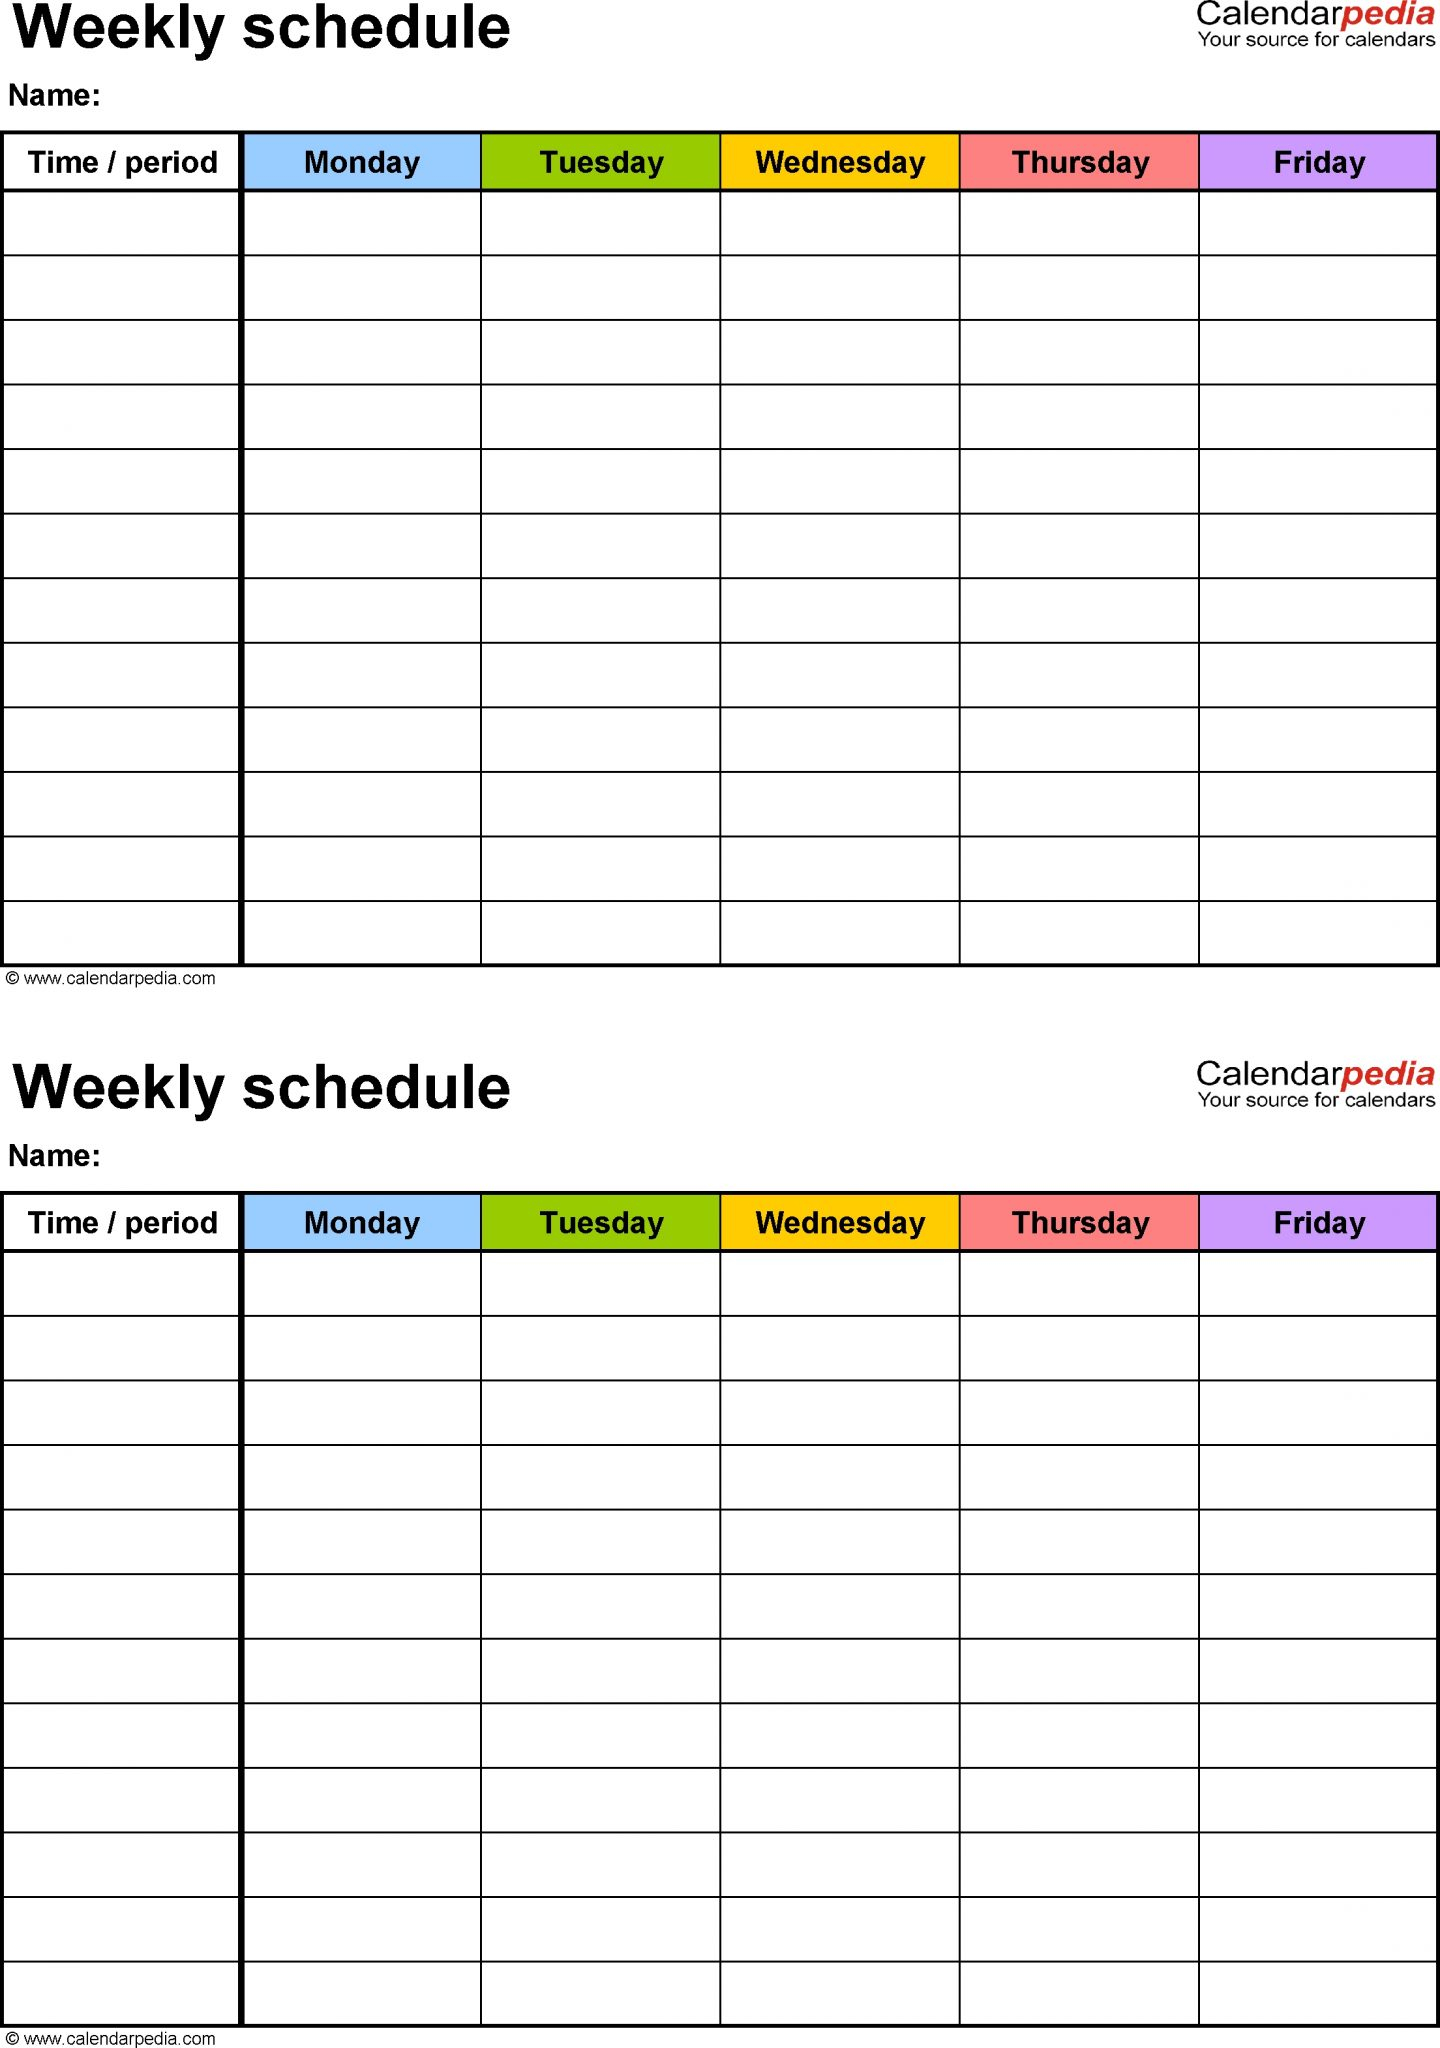 Free Printable Weekly Schedule Monday Fridays : Free Printable Schedule Mon To Friday